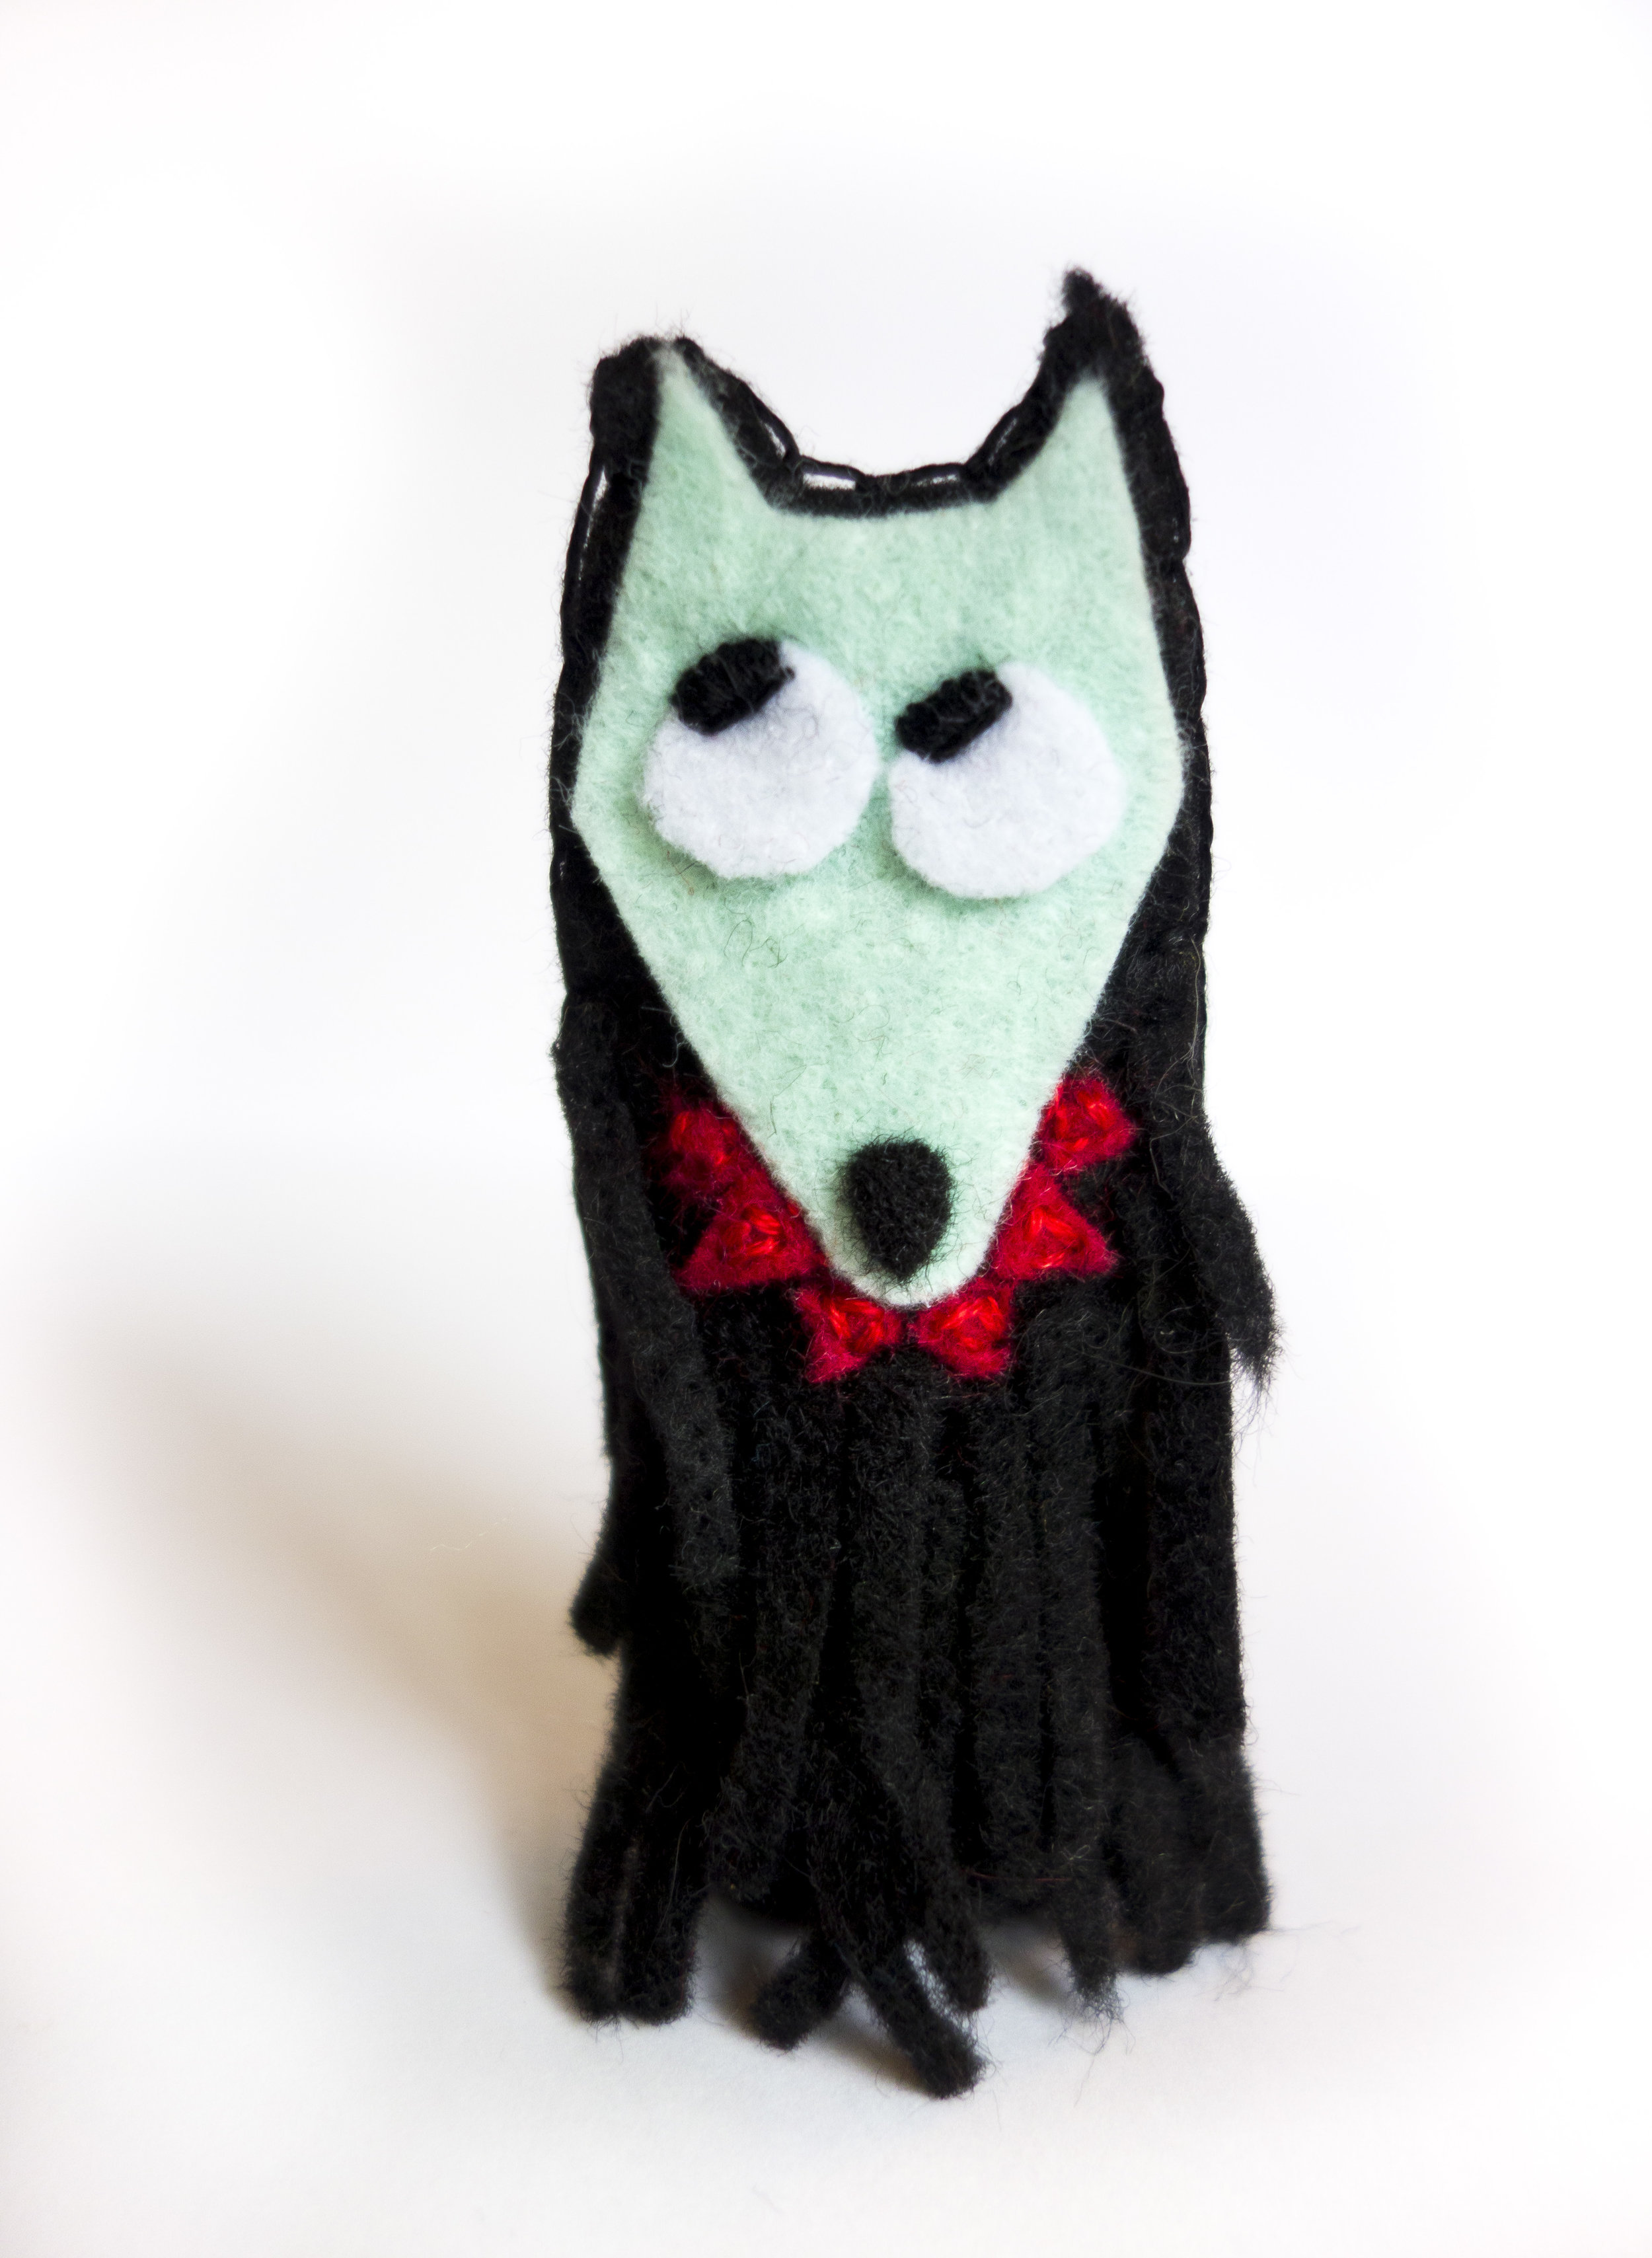 Werewolf - Do they come any cuter? Embroidered eyes, and embroidered over the teeth (I was afraid they'd fall off). To make the fur, I cut a small rectangle of black felt, then cut it into a zillion little matchstick-sized pieces, then glued them on at one end.